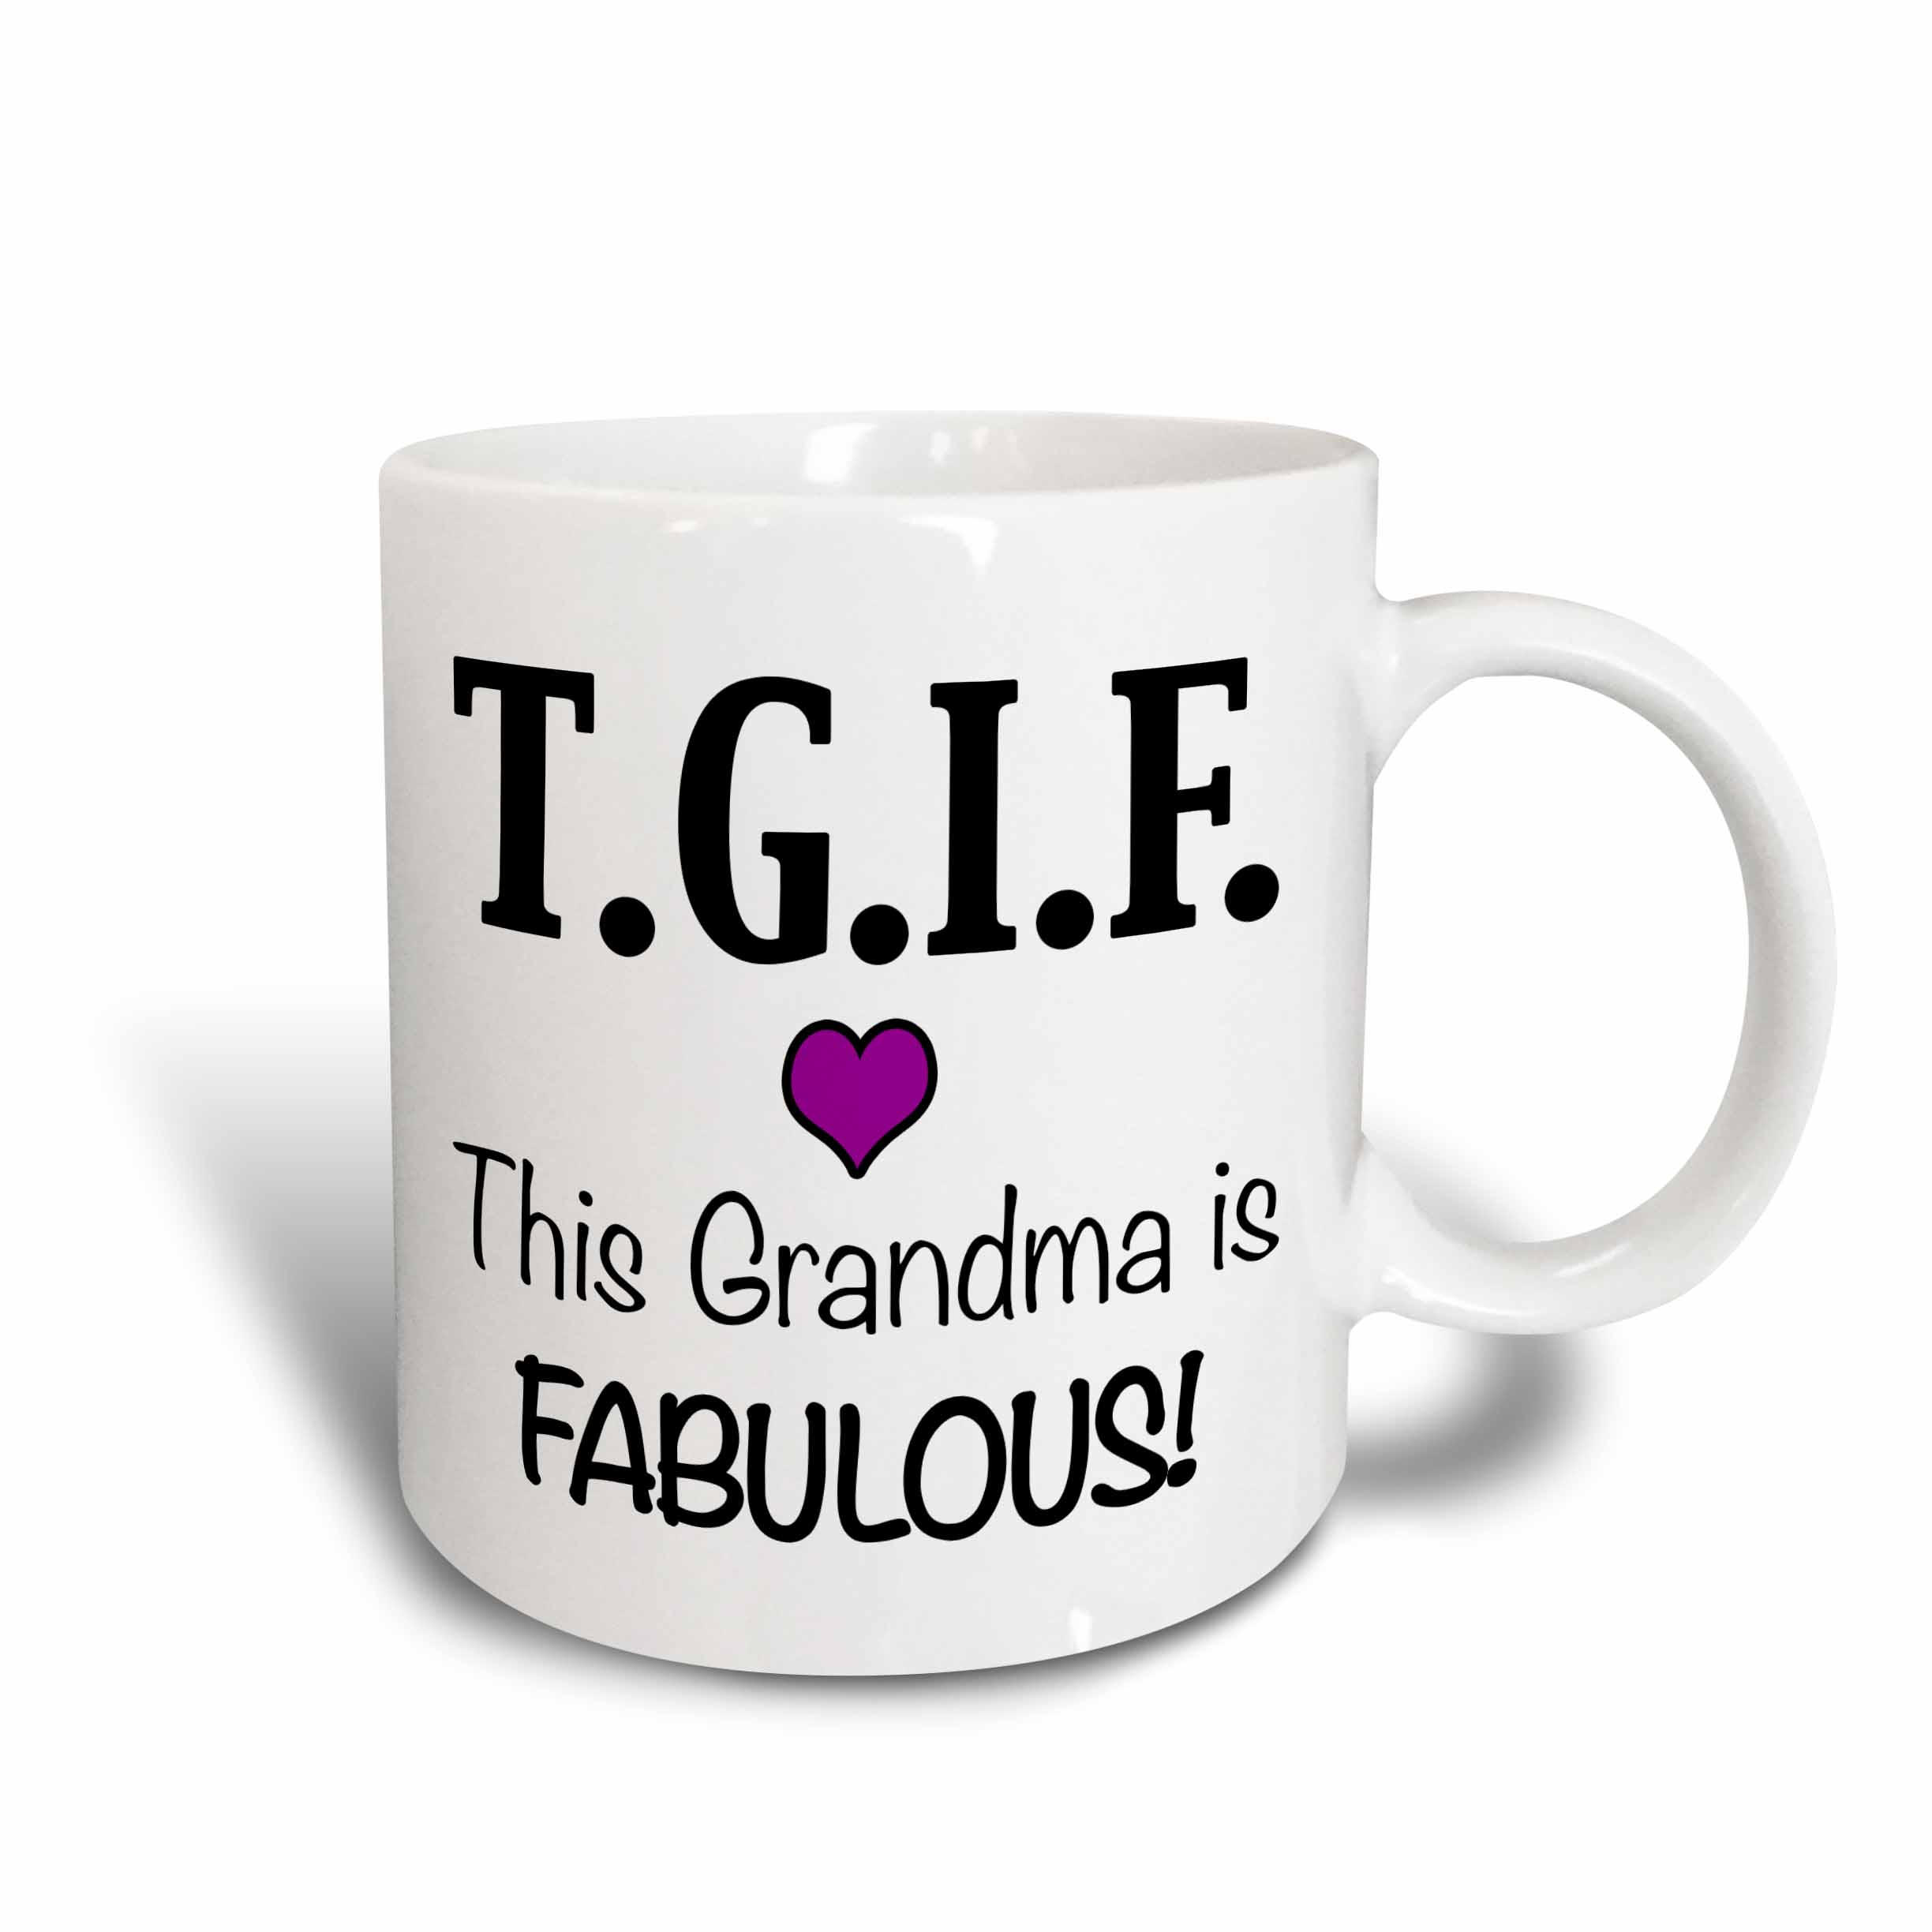 3dRose TGIF This Grandma is Fabulous, Purple, Ceramic Mug, 11-ounce